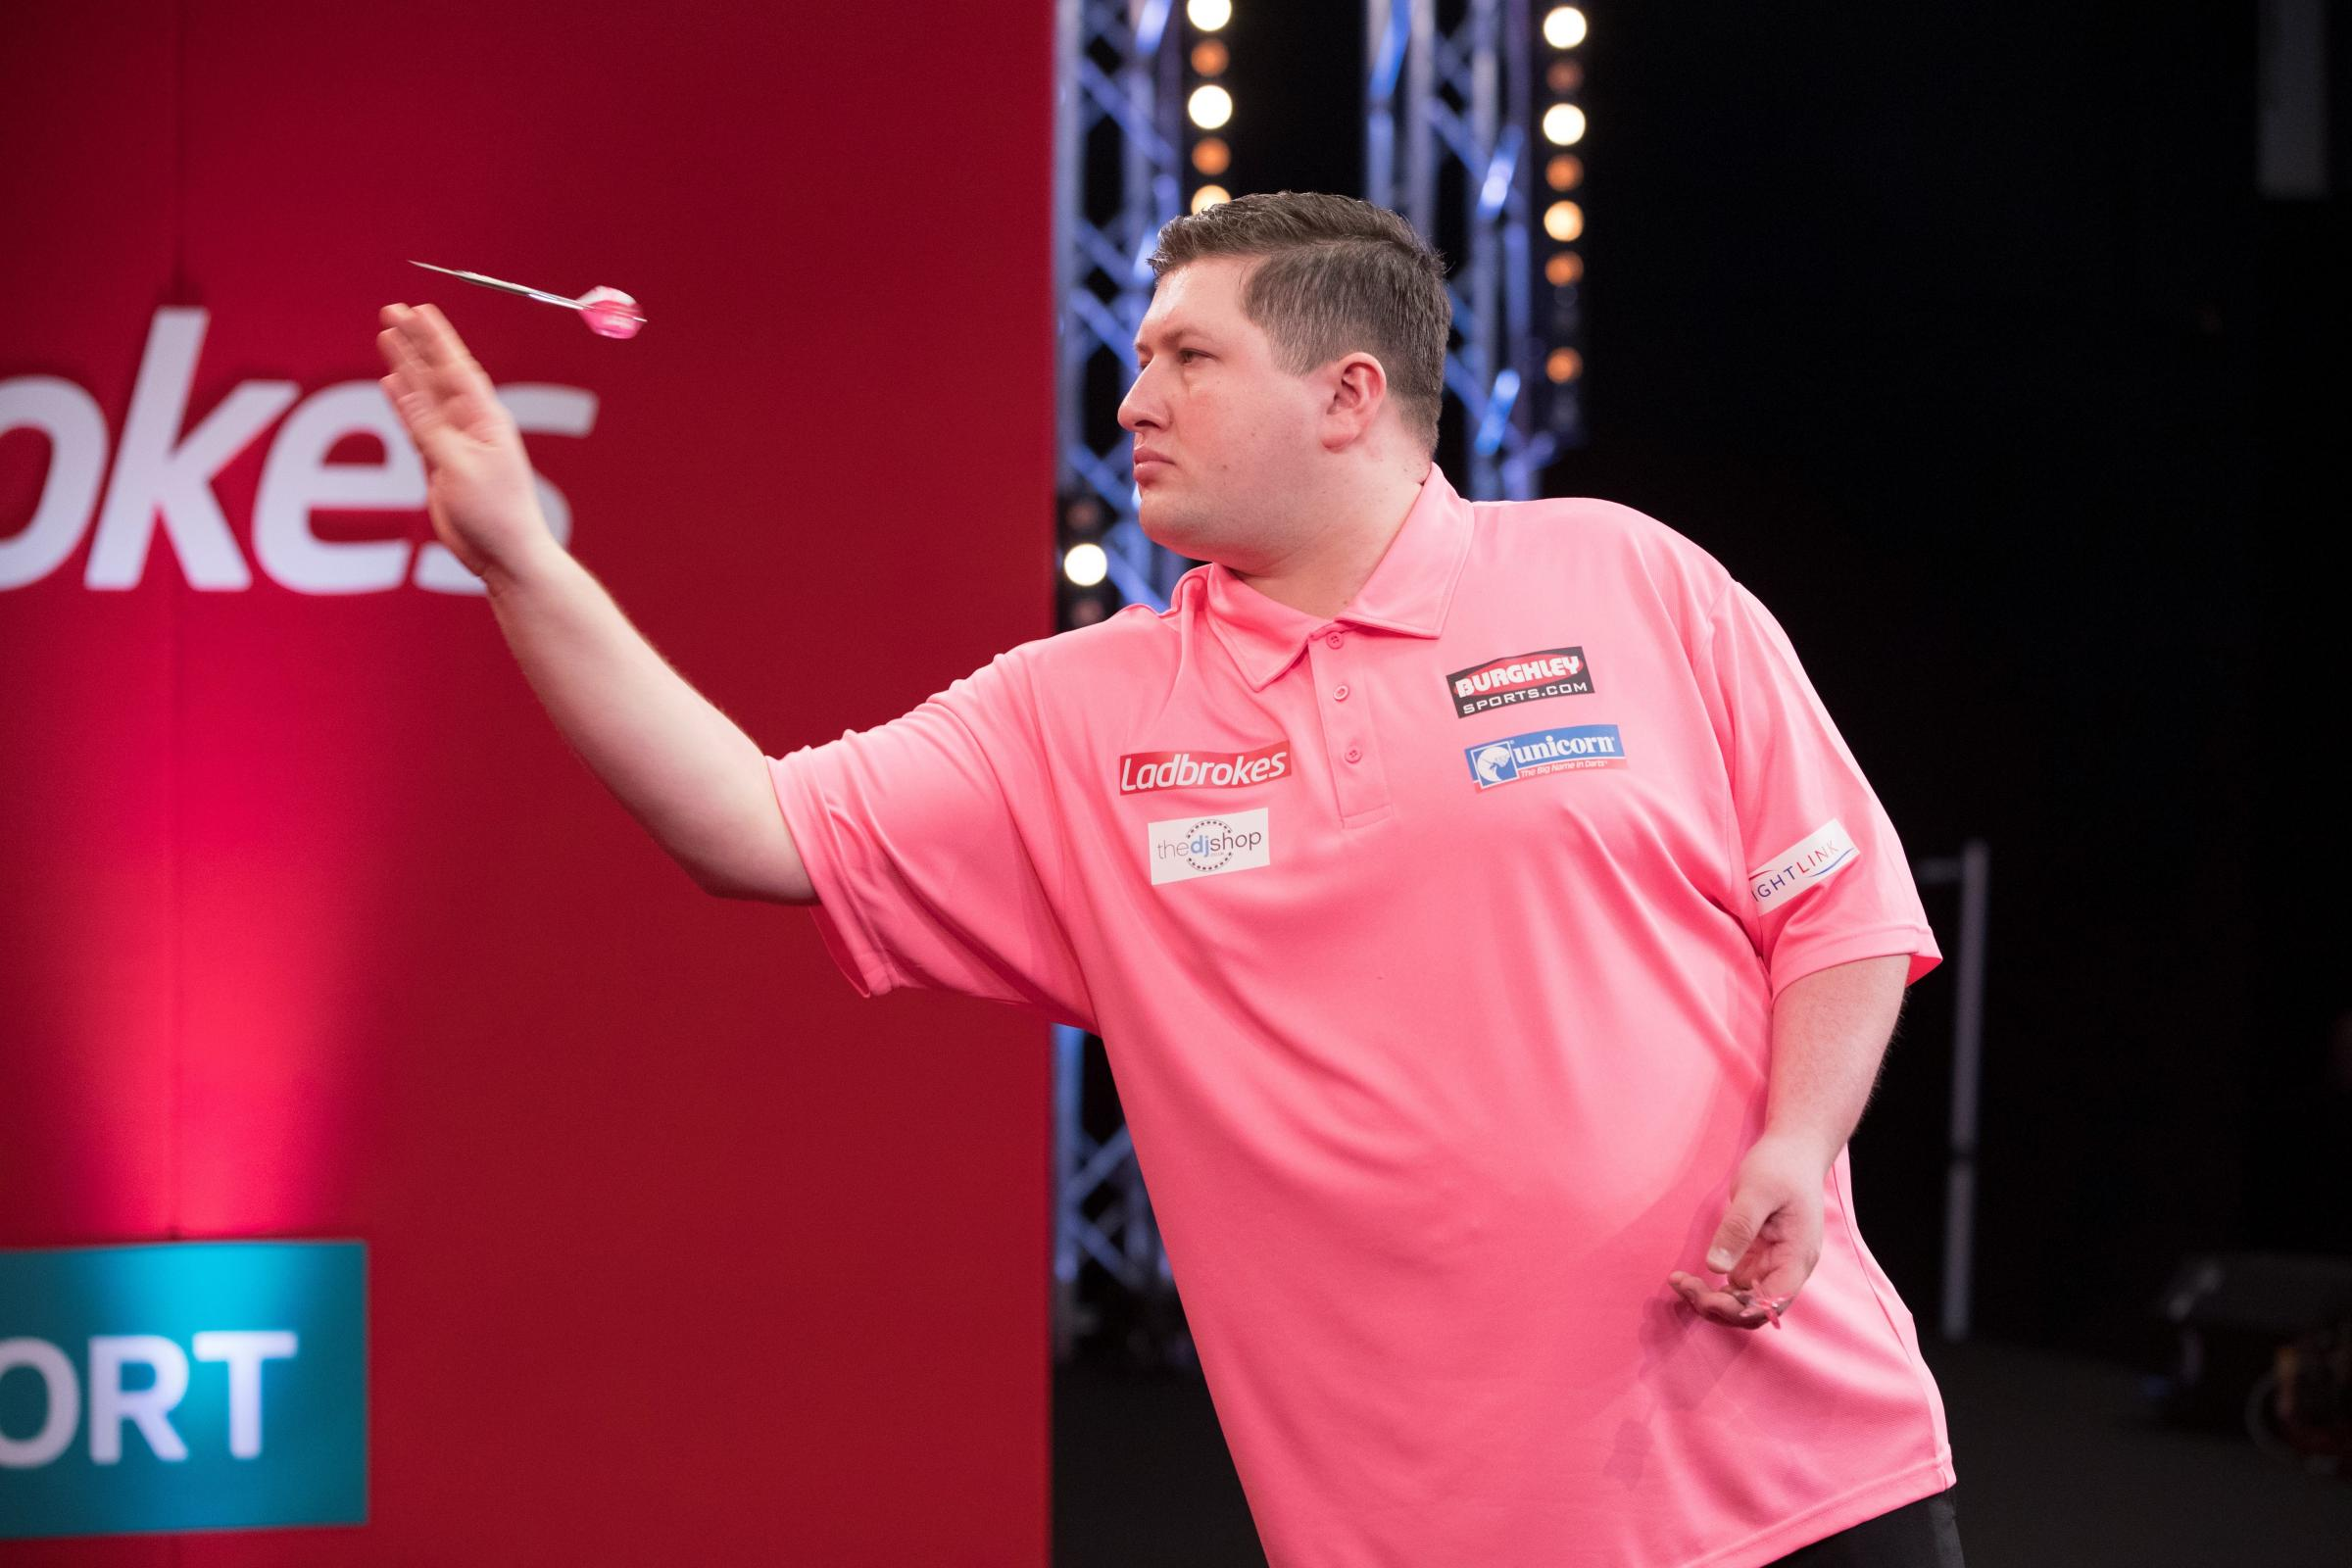 Keegan Brown, who will be gunning for world number one Michael van Gerwen in the 1Leisure Professional Darts Masters, which will take place at Newport's Medina Theatre next Friday. Photos: Lawrence Lustig/PDC